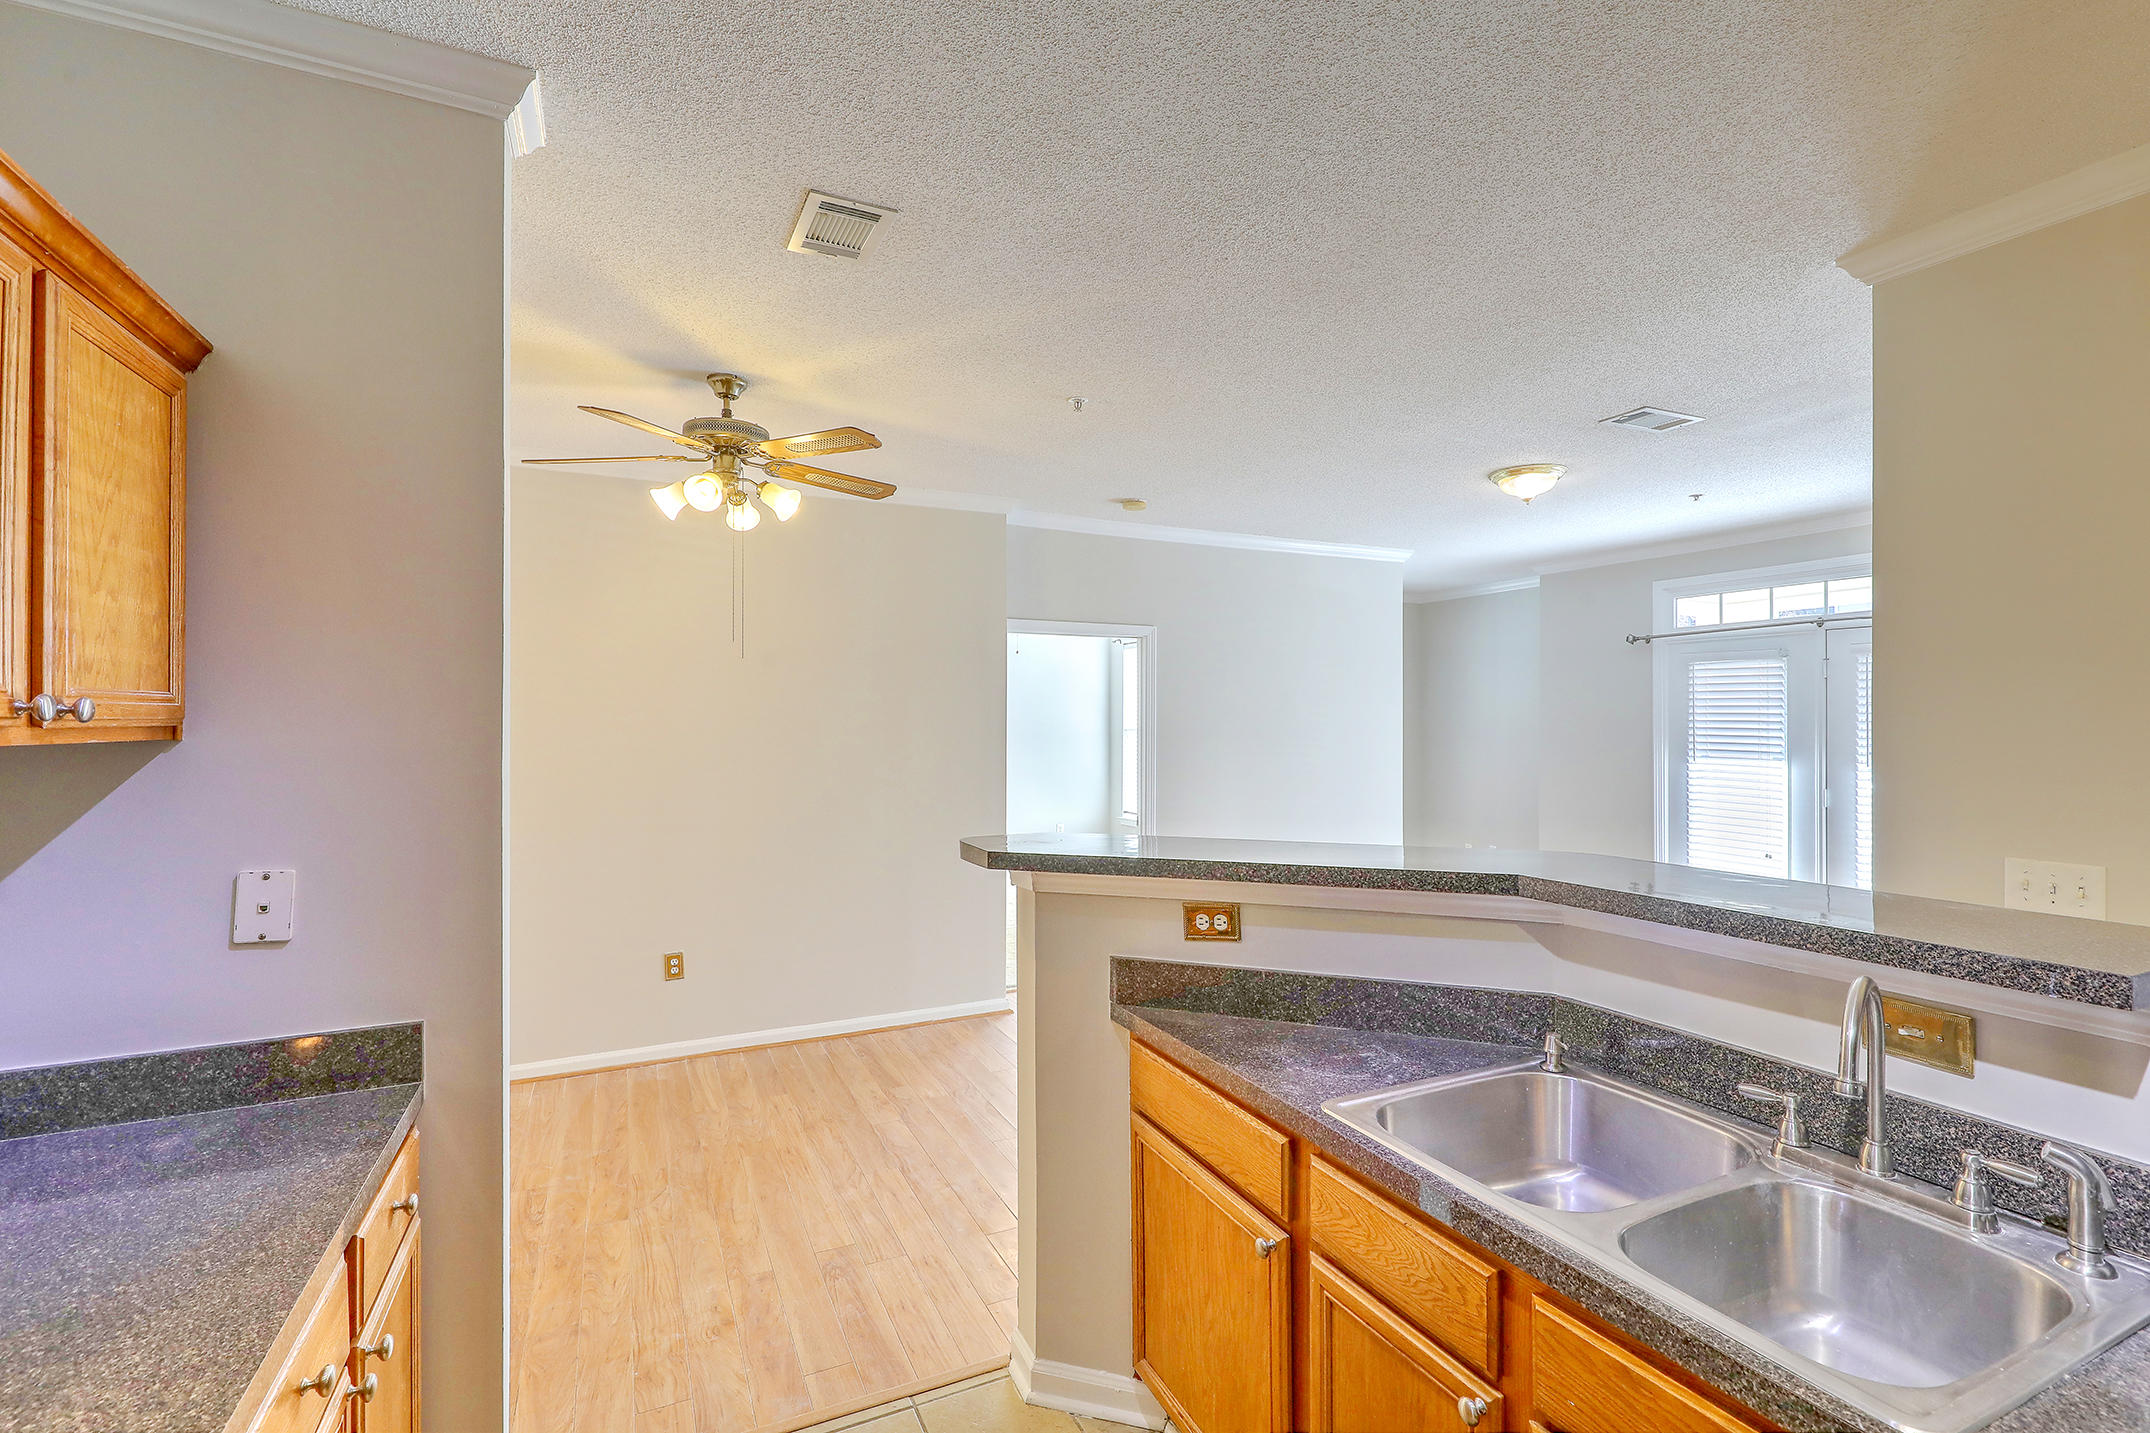 Concord West of The Ashley Homes For Sale - 45 Sycamore, Charleston, SC - 27